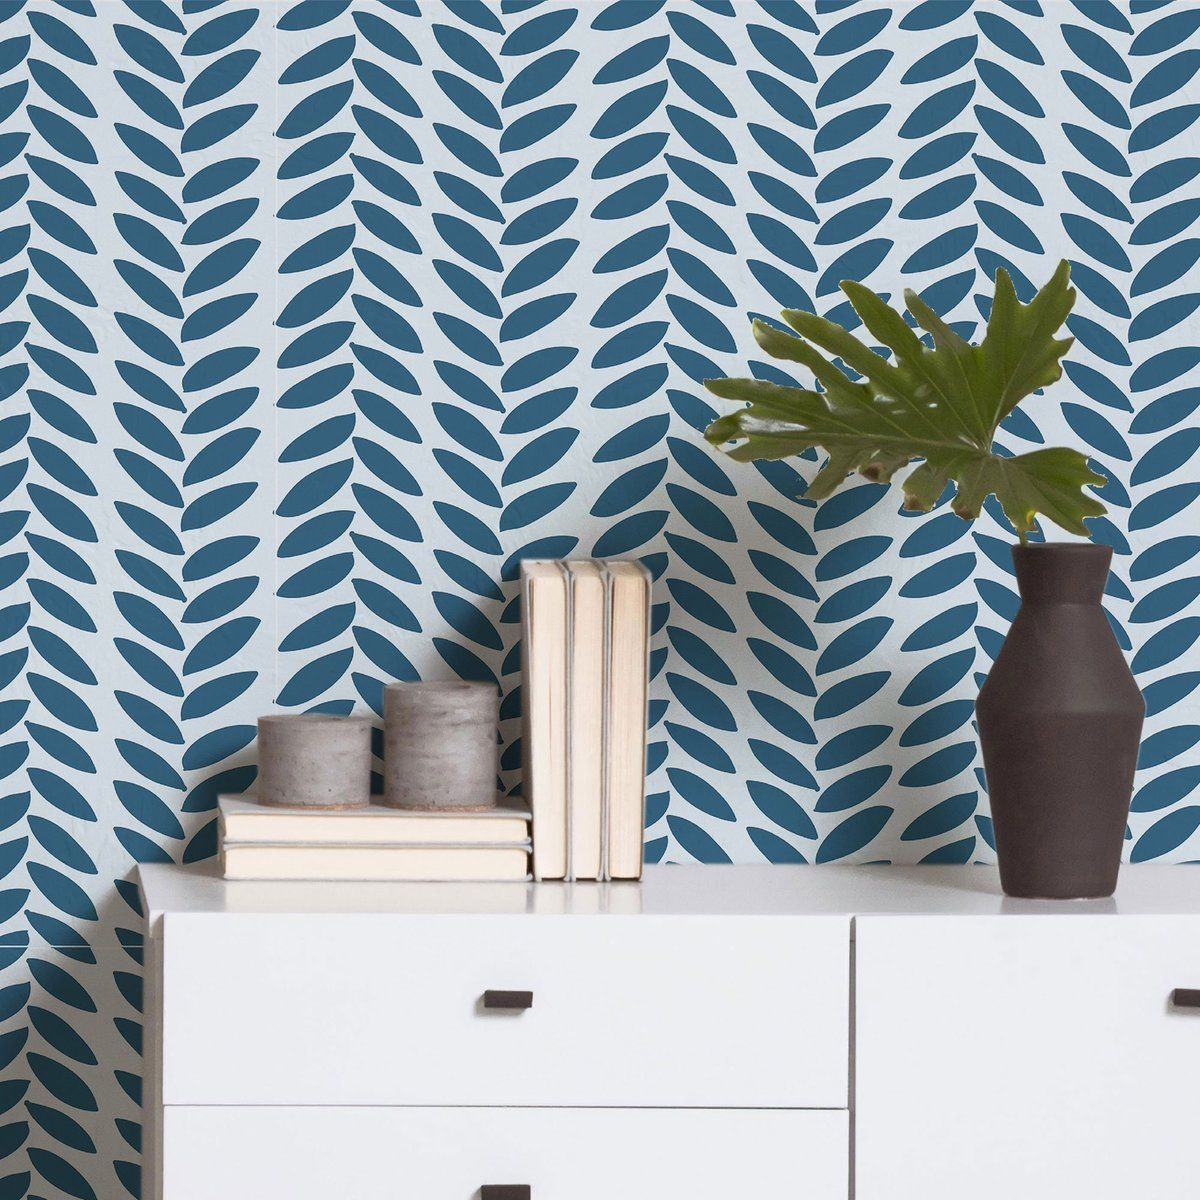 Blue Modern Basic Peel And Stick Removable Wallpaper 23 A Removable Wallpaper Traditional Wallpaper Wall Coverings